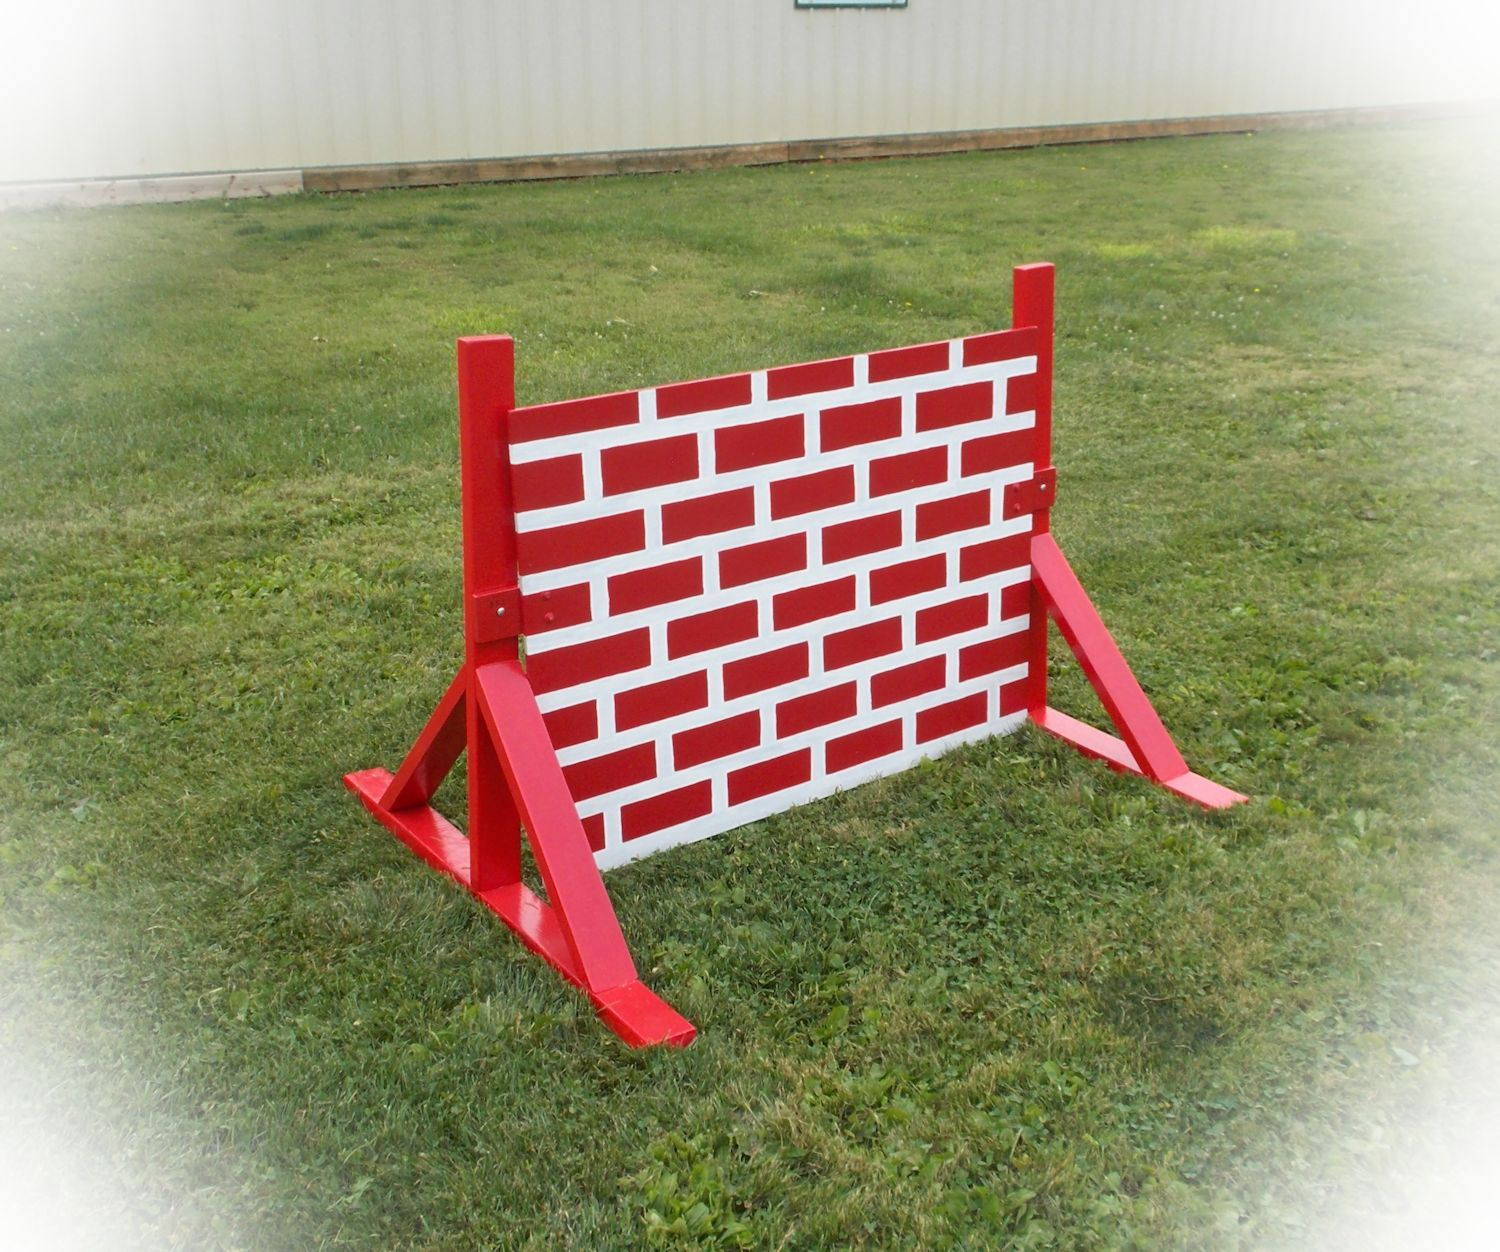 K9 training brick wall jump